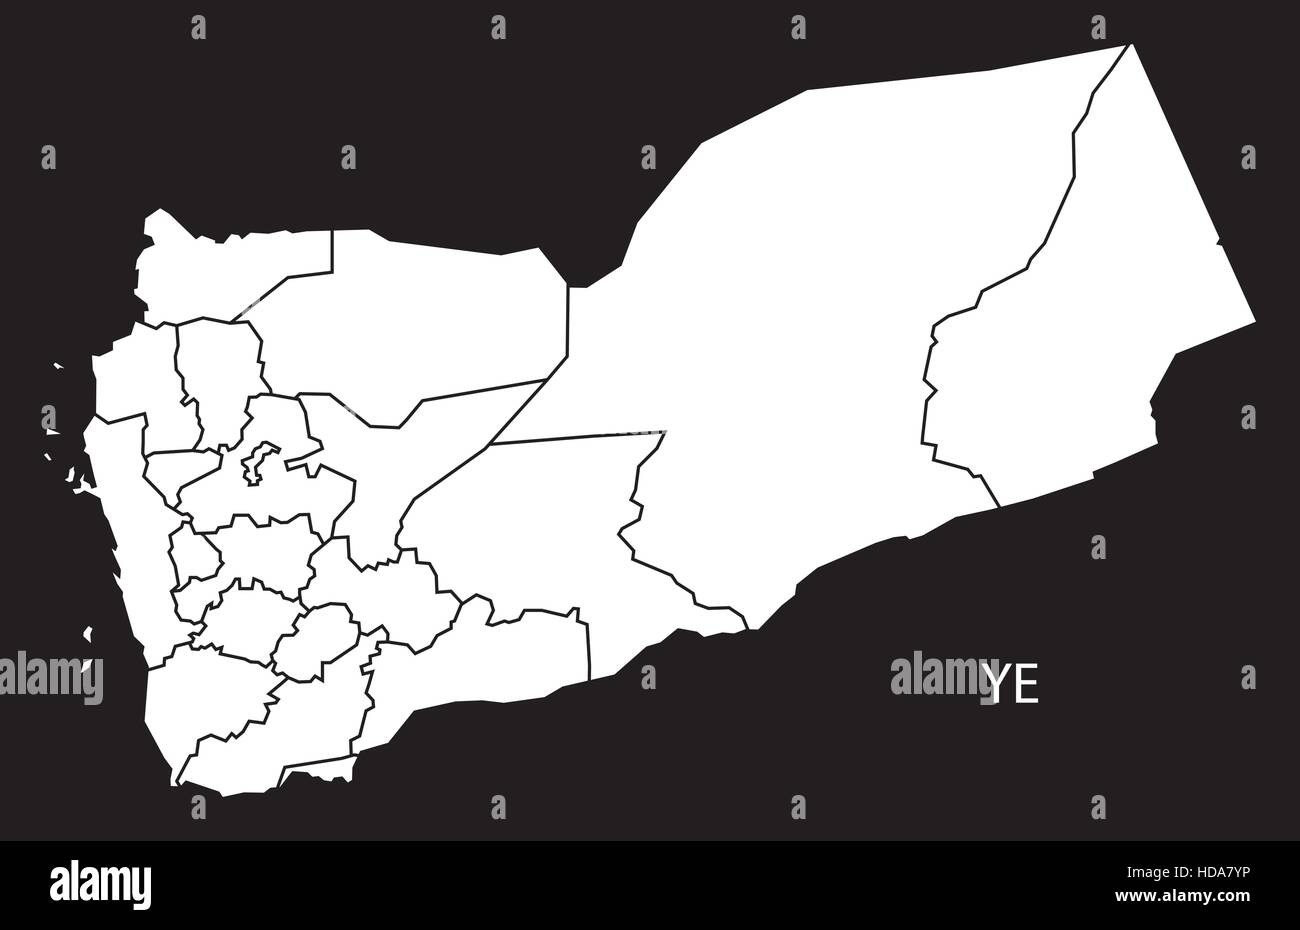 Yemen governorates Map black and white illustration - Stock Vector